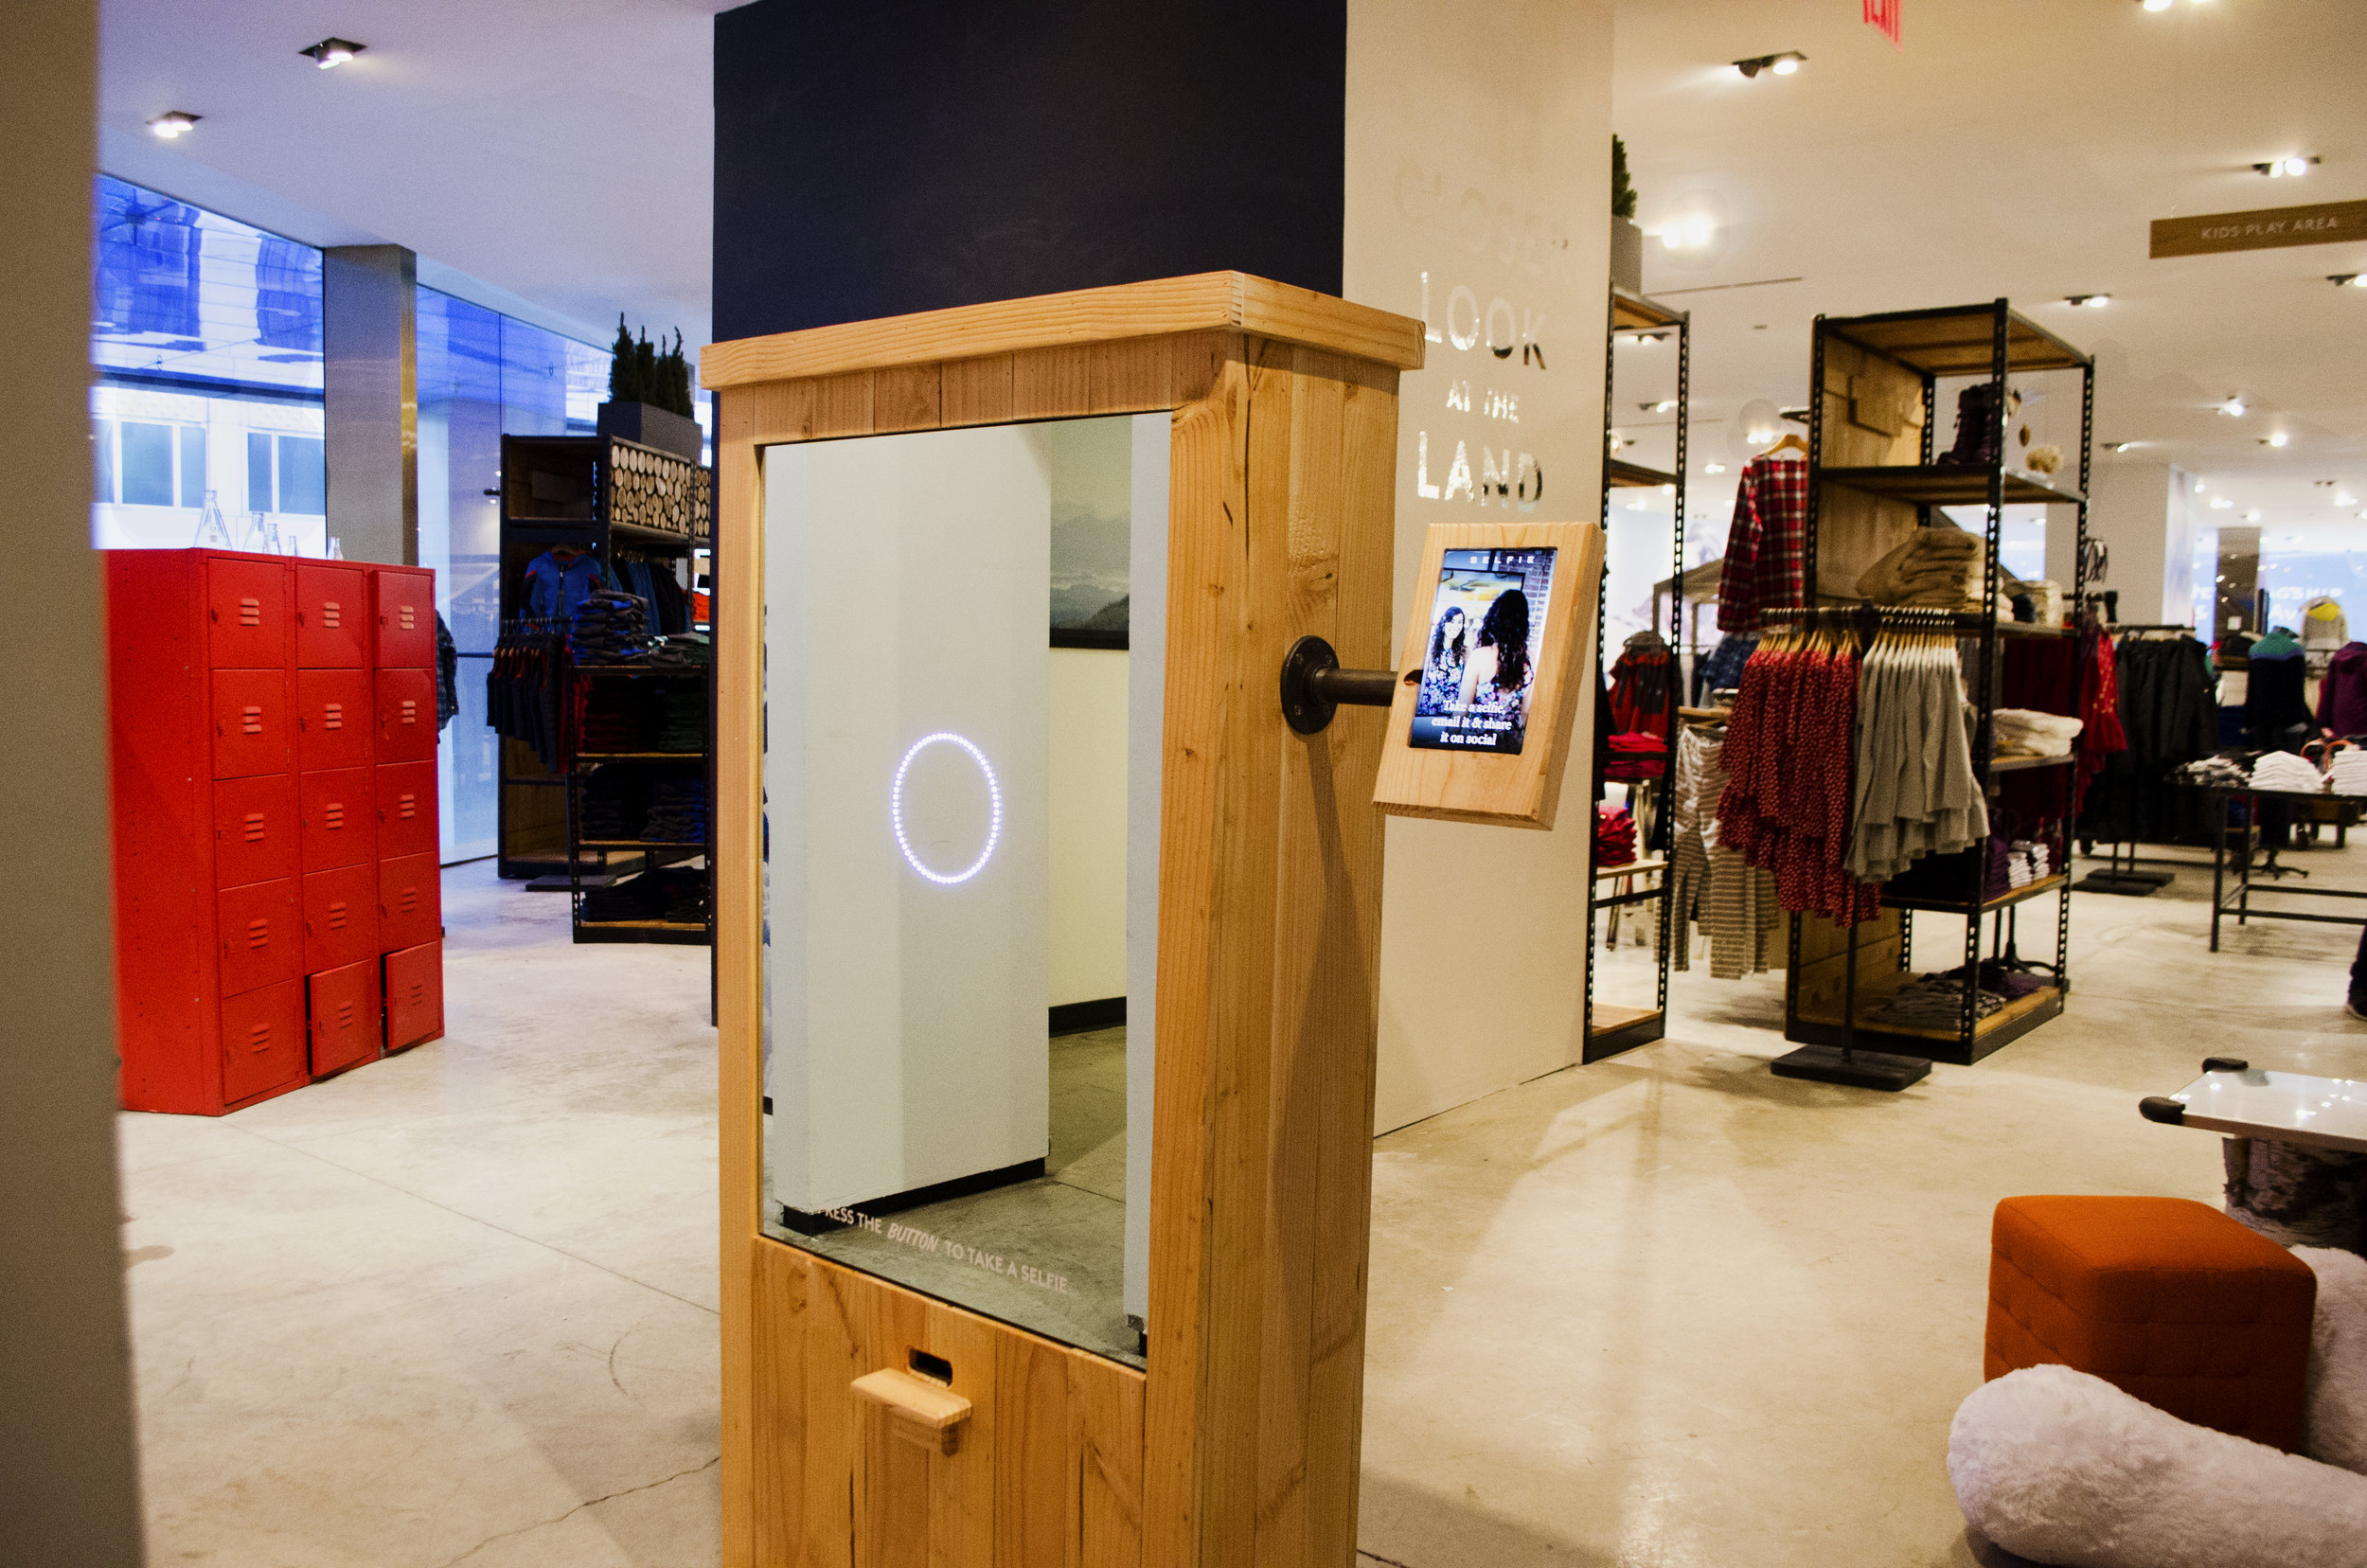 SELFIE mirror built and deployed in the Lands End Pop-Up in NYC. After a photo was taken a coupon was dispensed for discounts in store.